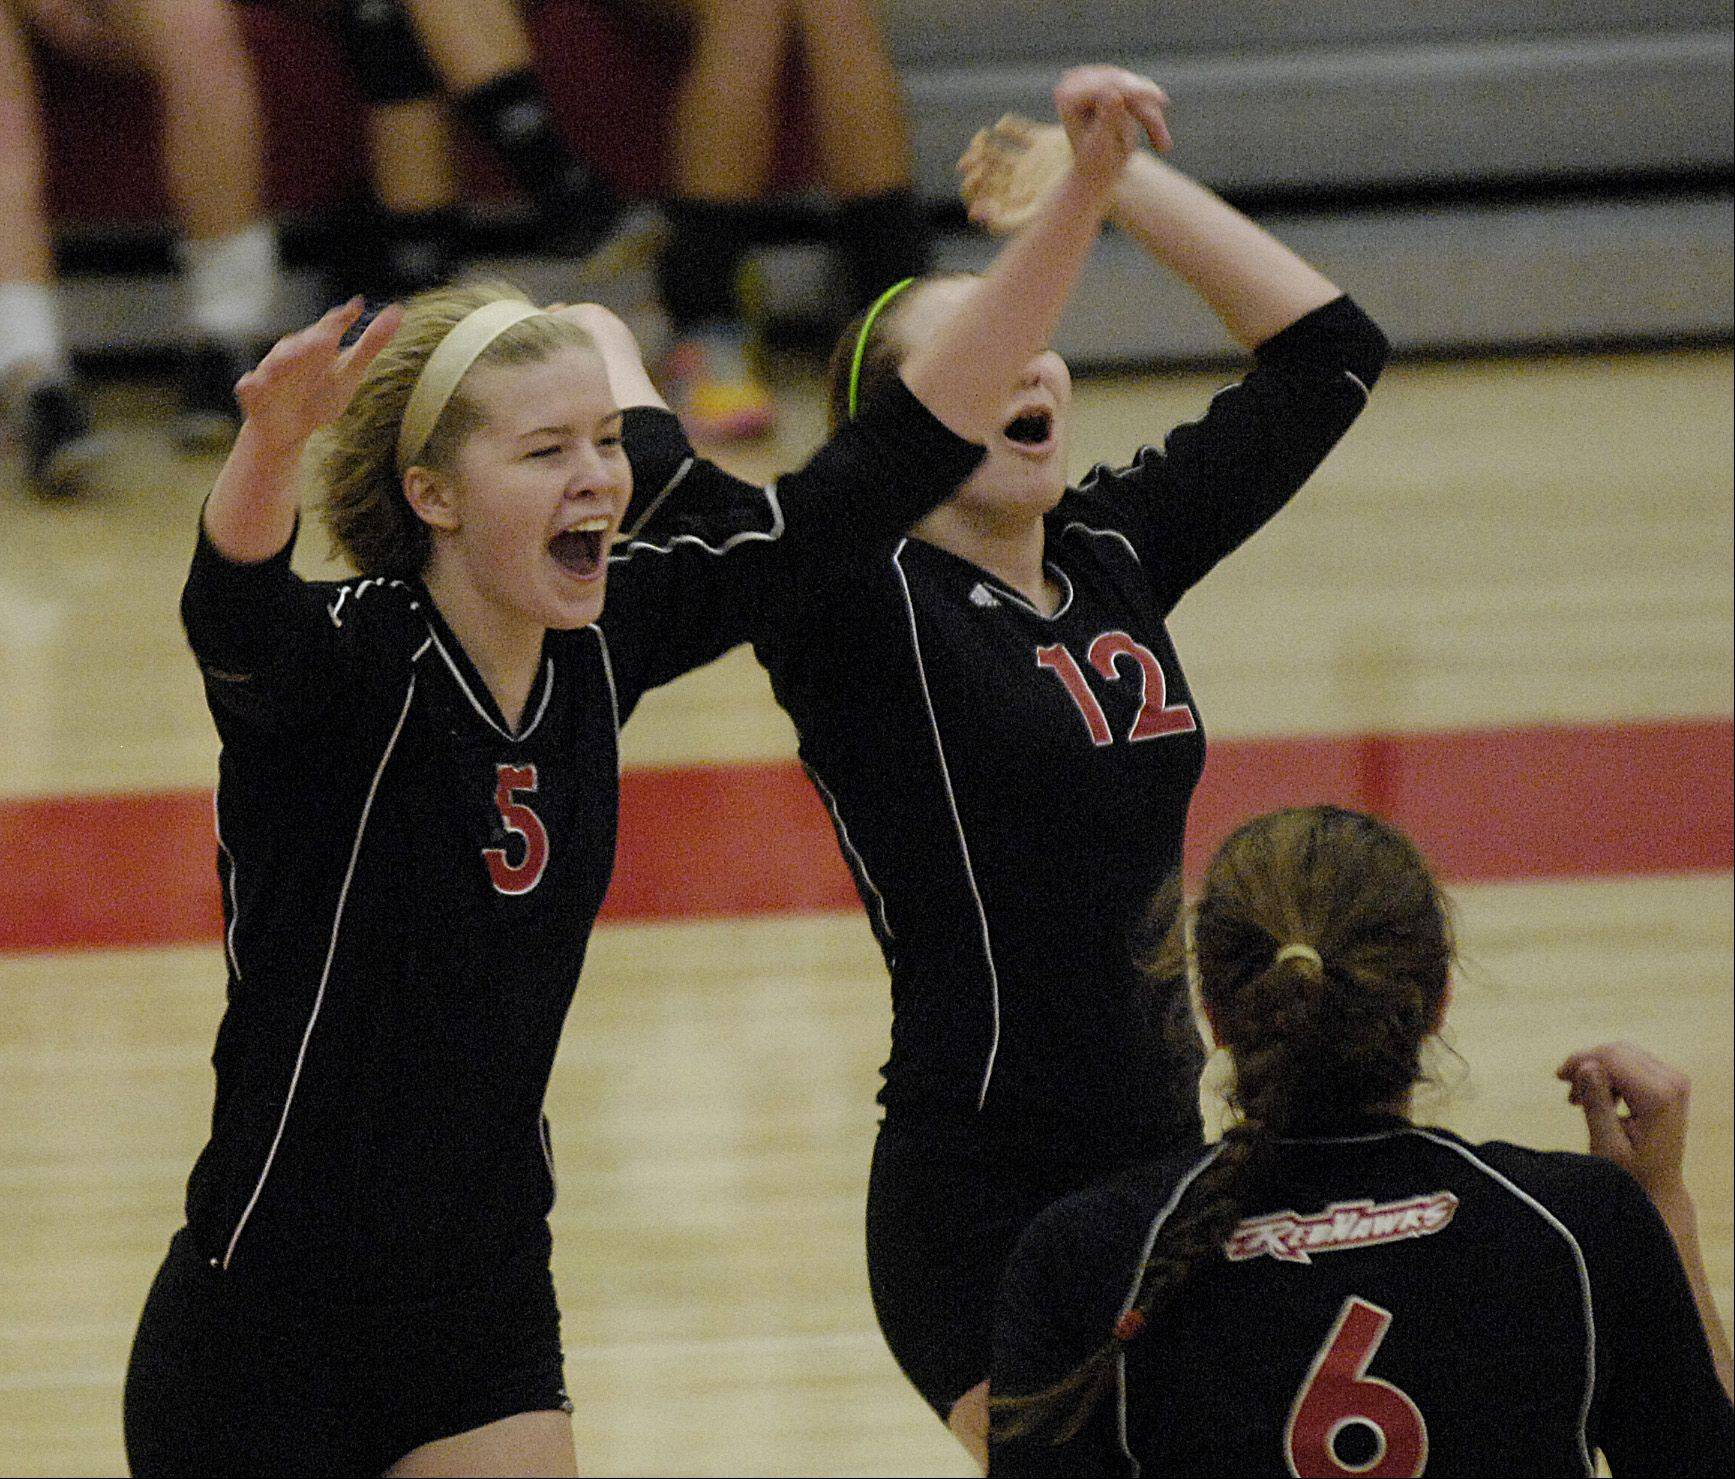 Sammy Condon and Abbi Williamson of Naperville Central celebrate a point against Naperville North at home, Thursday.